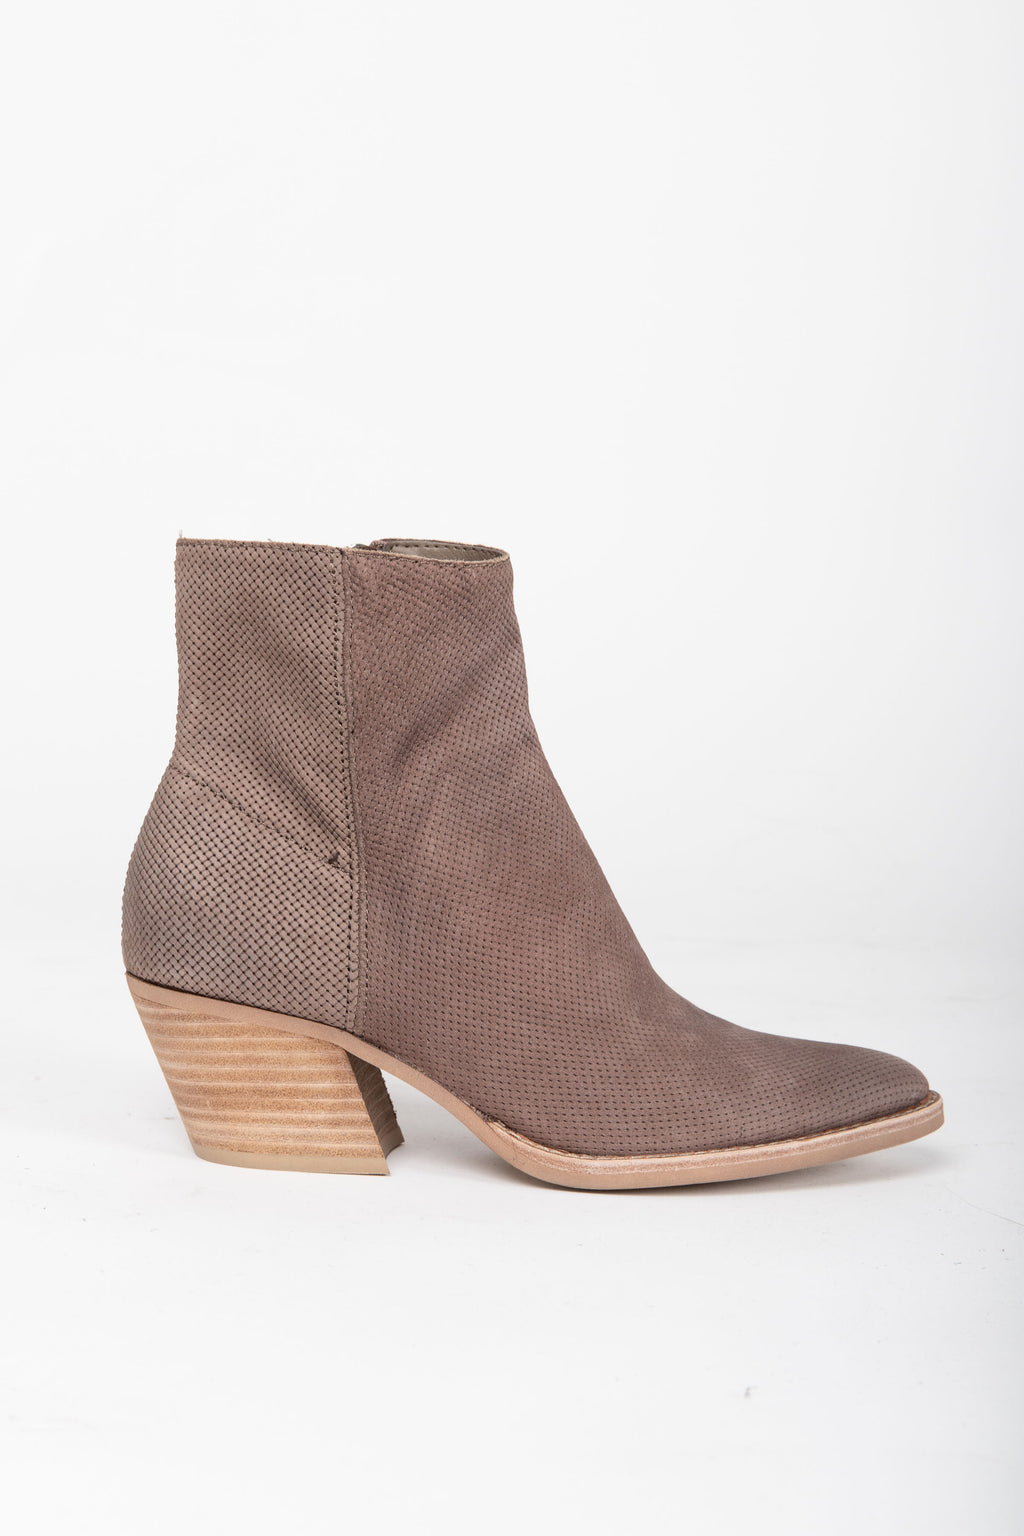 Dolce Vita: Asha Booties in Smoke